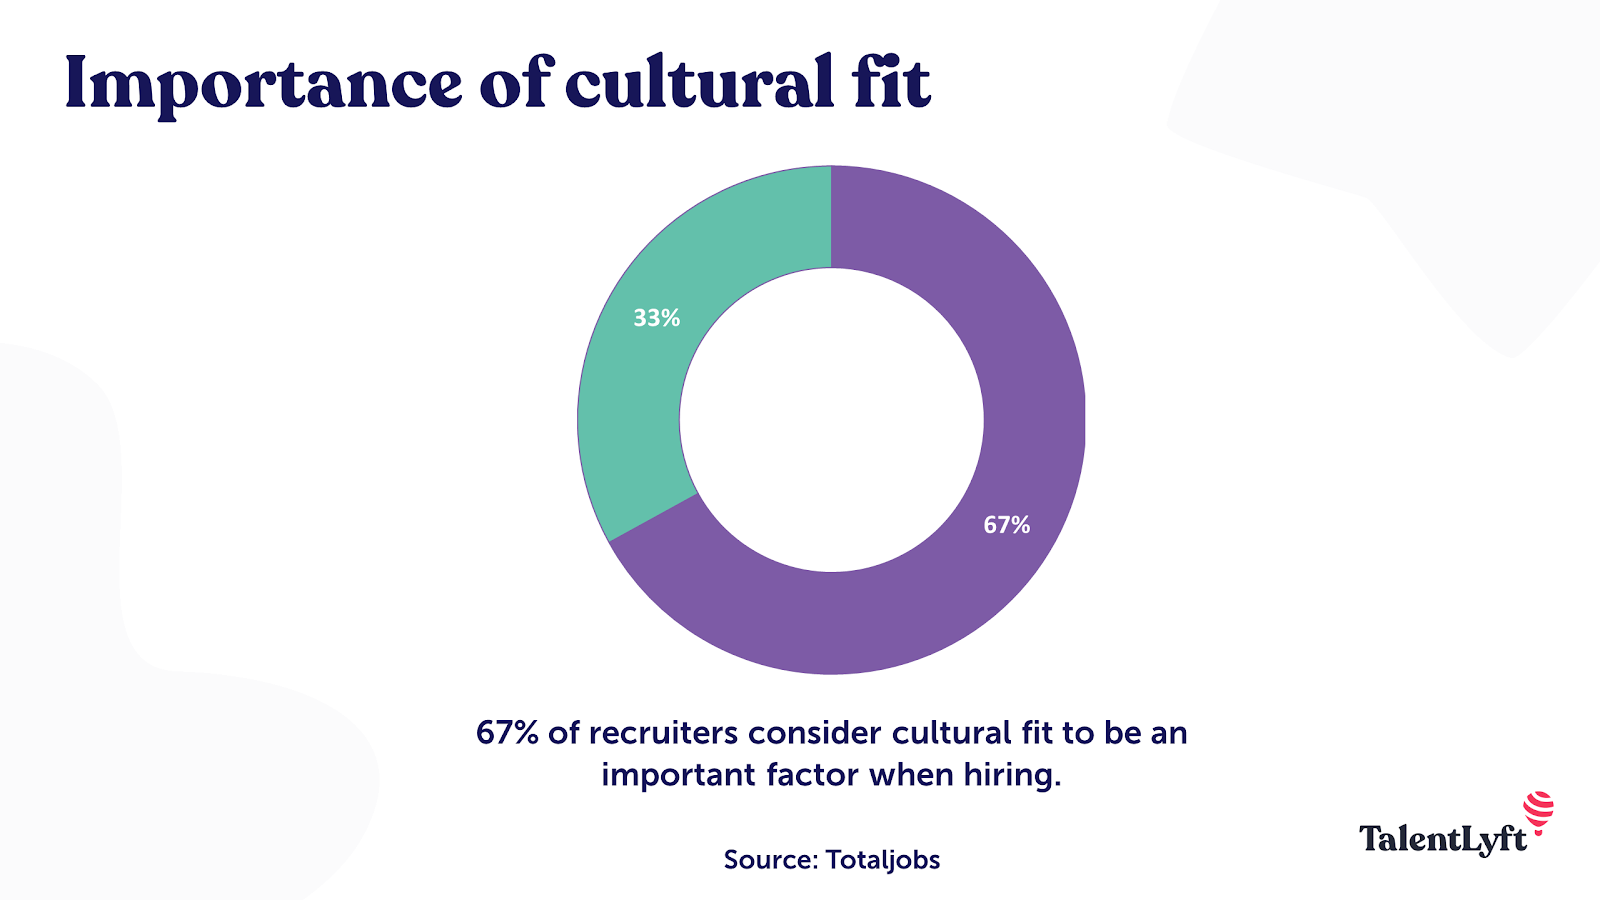 Importance of cultural fit